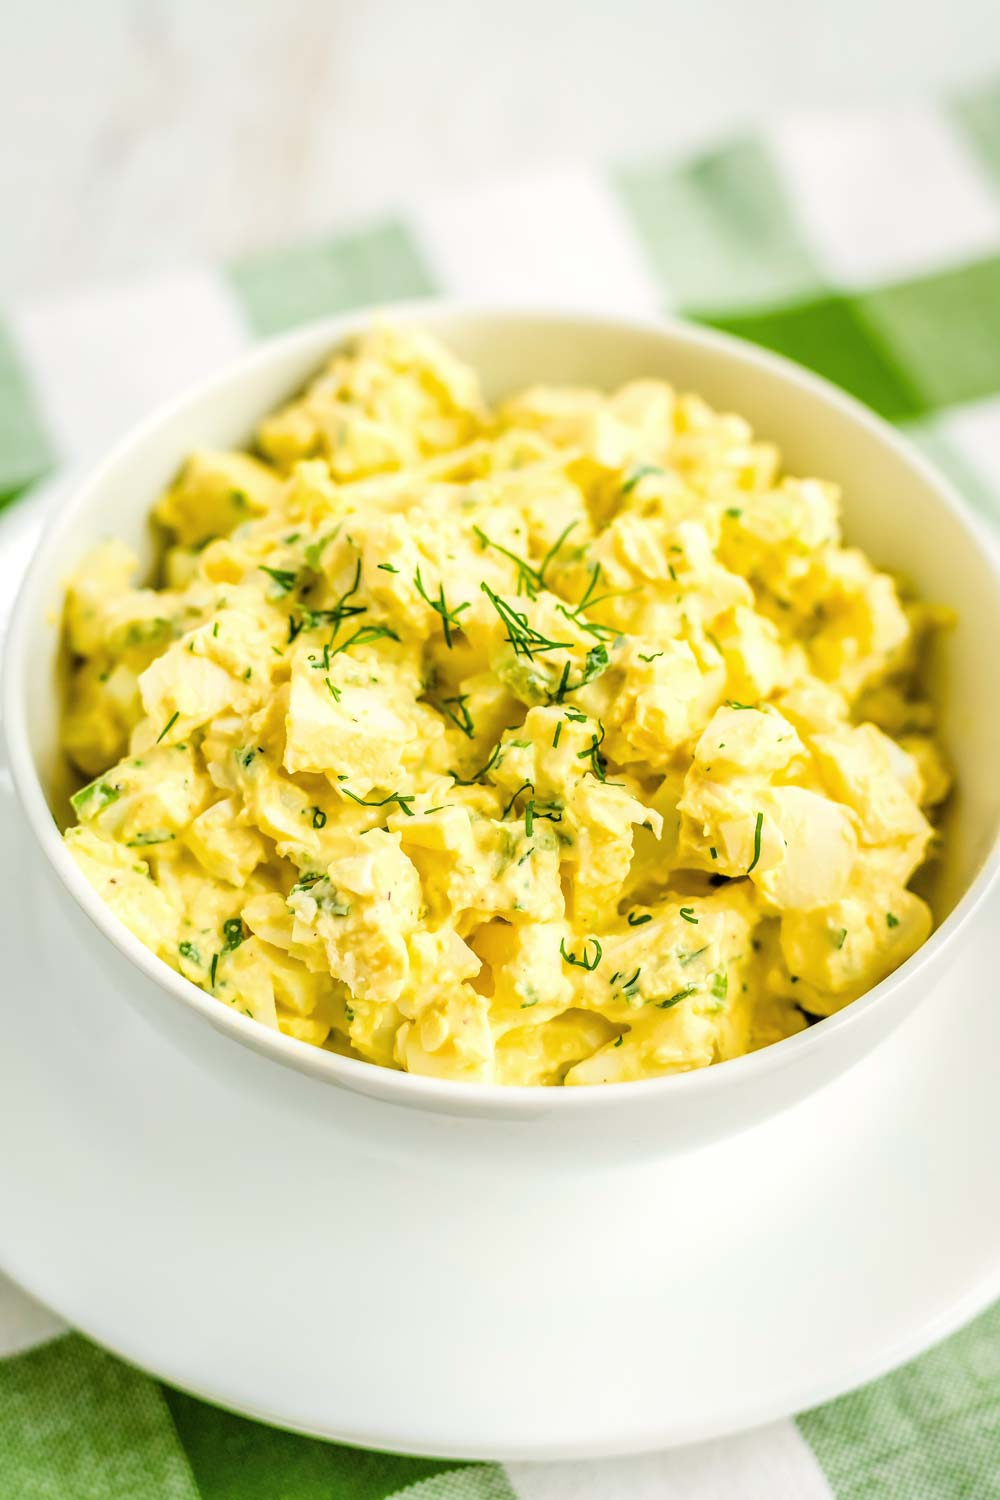 Egg Salad recipe with chives and dill